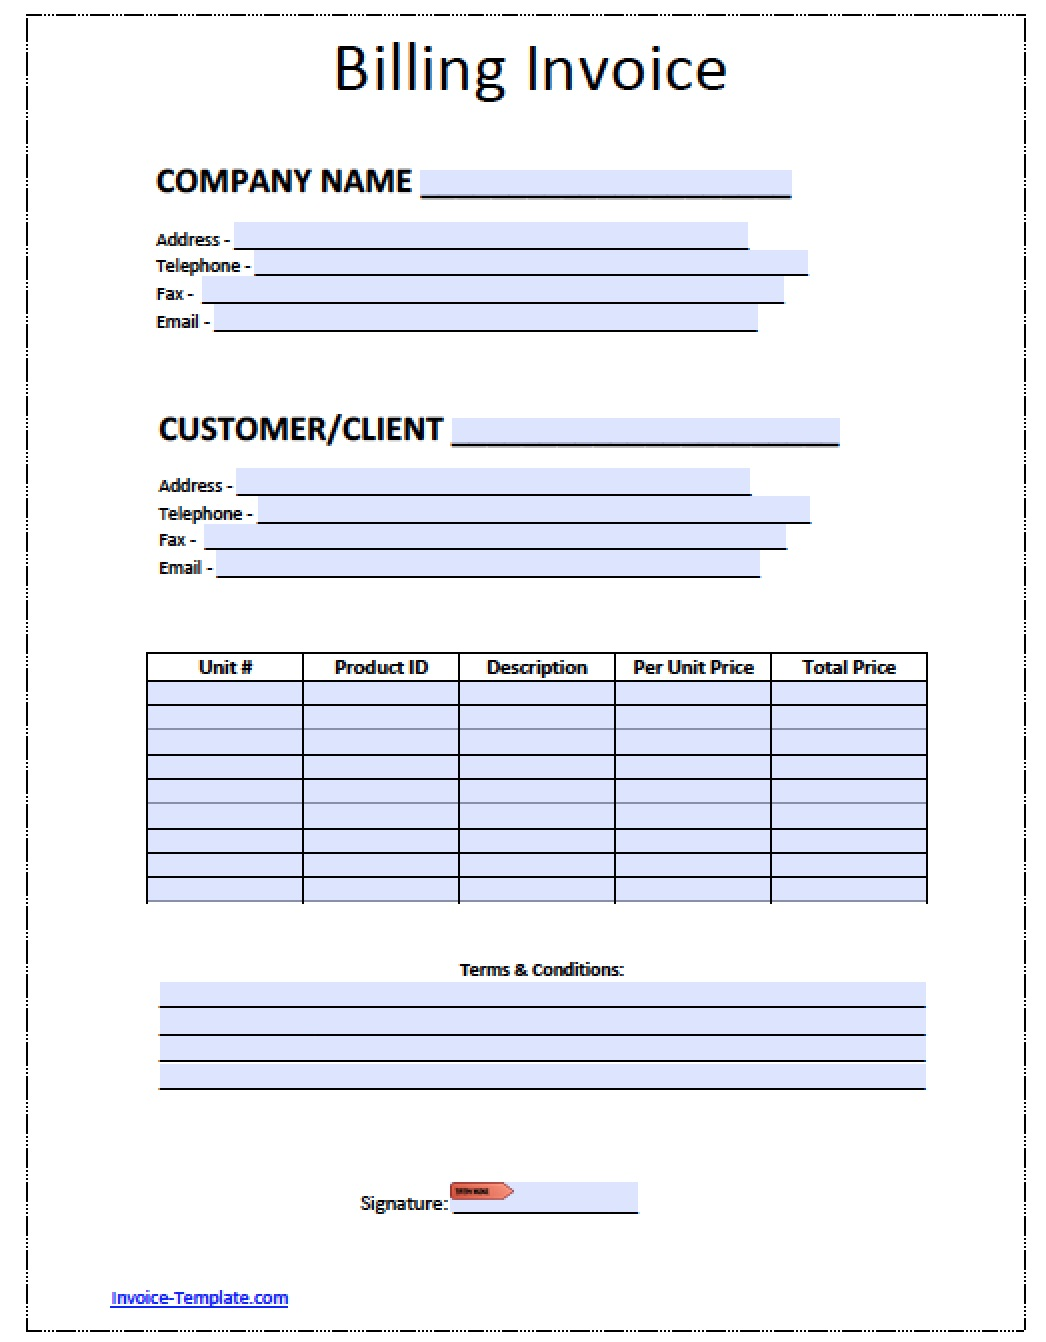 Ebitus  Nice Billing Invoice Invoices Faq U Cloudflare Support Billing  With Goodlooking Free Billing Invoice Template  Excel  Pdf  Word Doc  Billing With Attractive Invoice Proforma Sample Also Statement Of Invoices In Addition What Does Proforma Invoice Mean And Proforma Invoice Template Word Doc As Well As Tax Invoice Sample Additionally Template Tax Invoice From Happytomco With Ebitus  Goodlooking Billing Invoice Invoices Faq U Cloudflare Support Billing  With Attractive Free Billing Invoice Template  Excel  Pdf  Word Doc  Billing And Nice Invoice Proforma Sample Also Statement Of Invoices In Addition What Does Proforma Invoice Mean From Happytomco